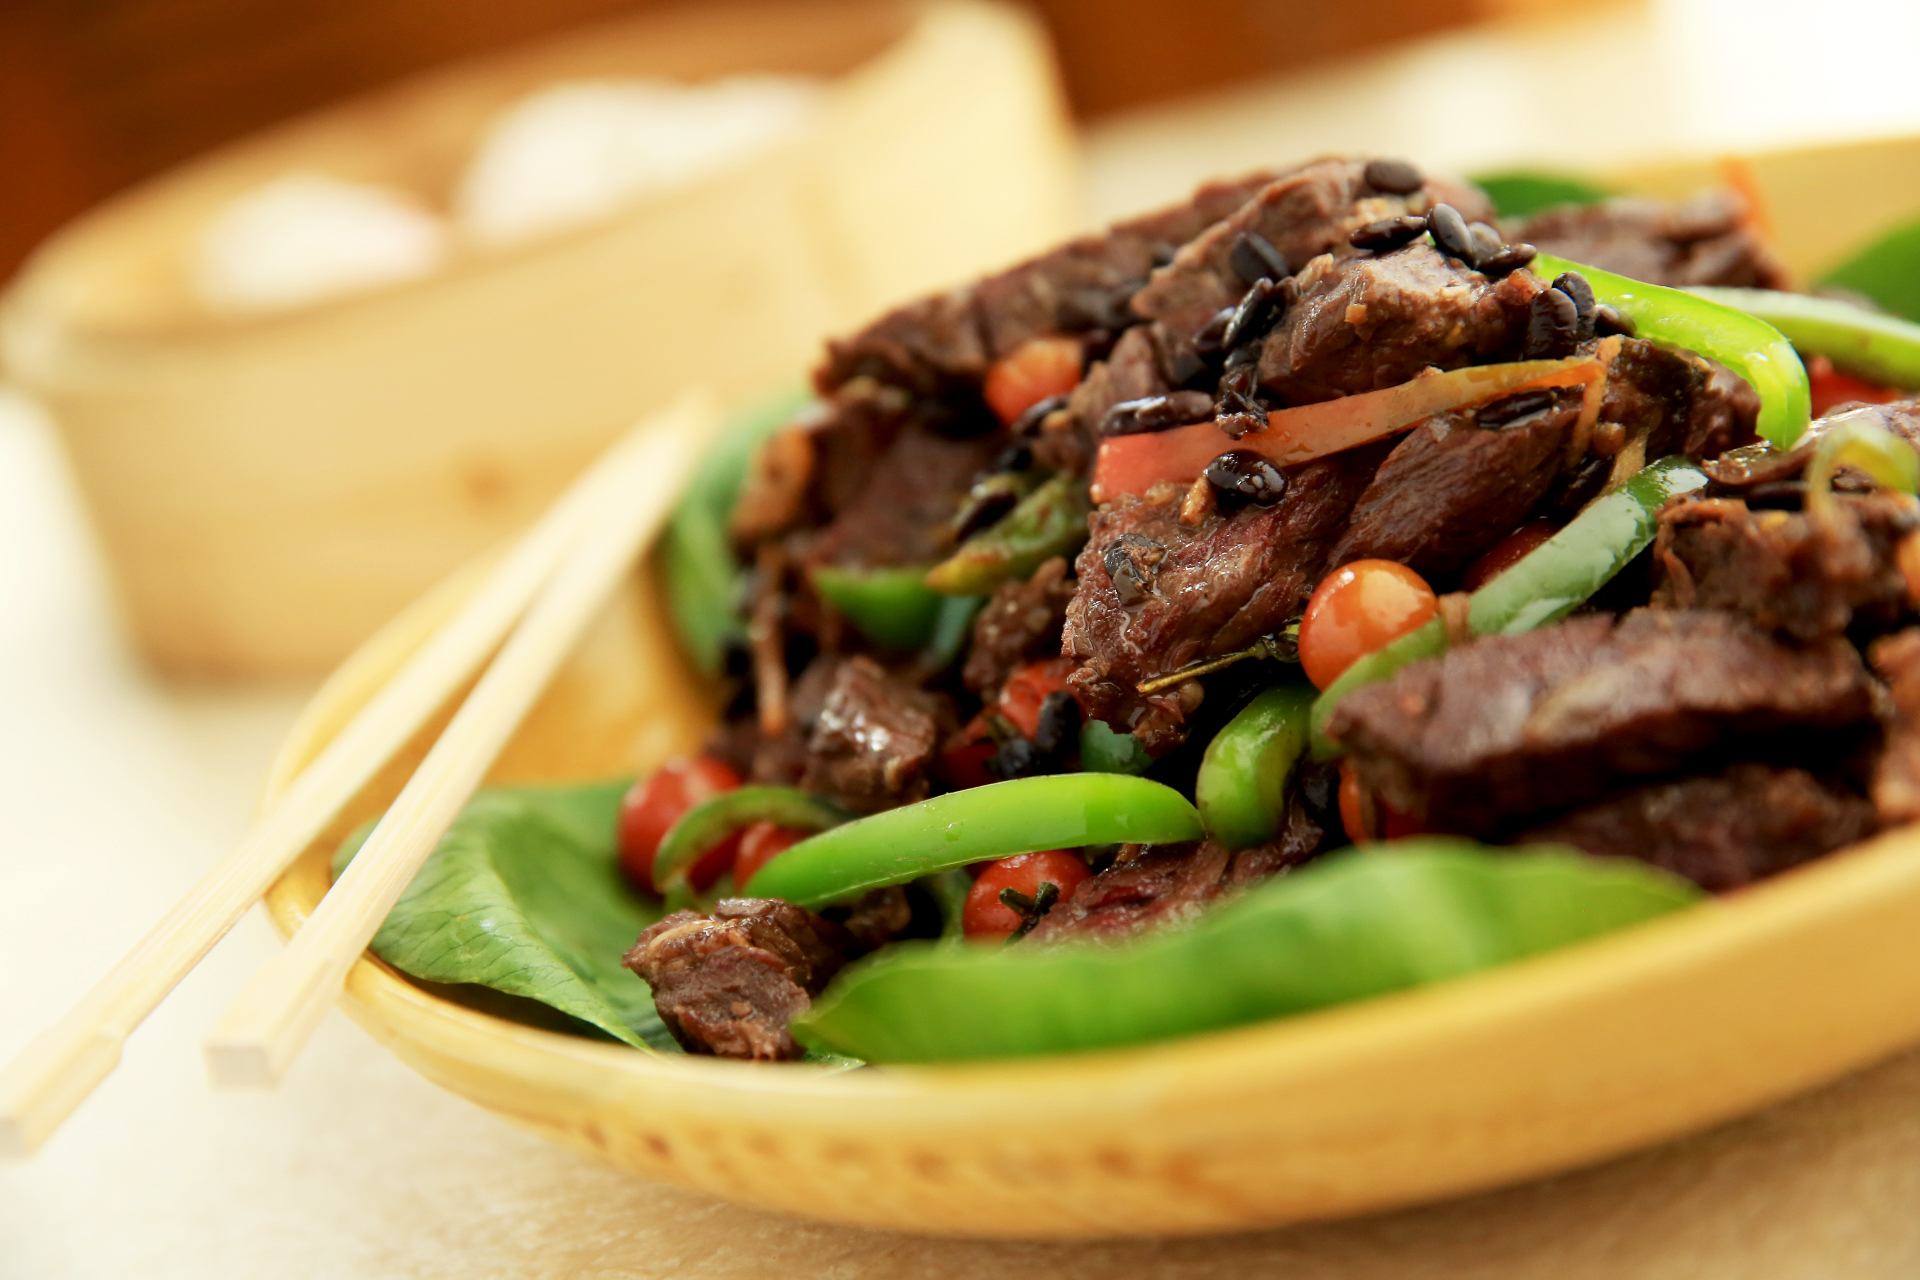 Richmonde Cafe's Chinoy Festival features Sliced Beef with Red and Green Pepper